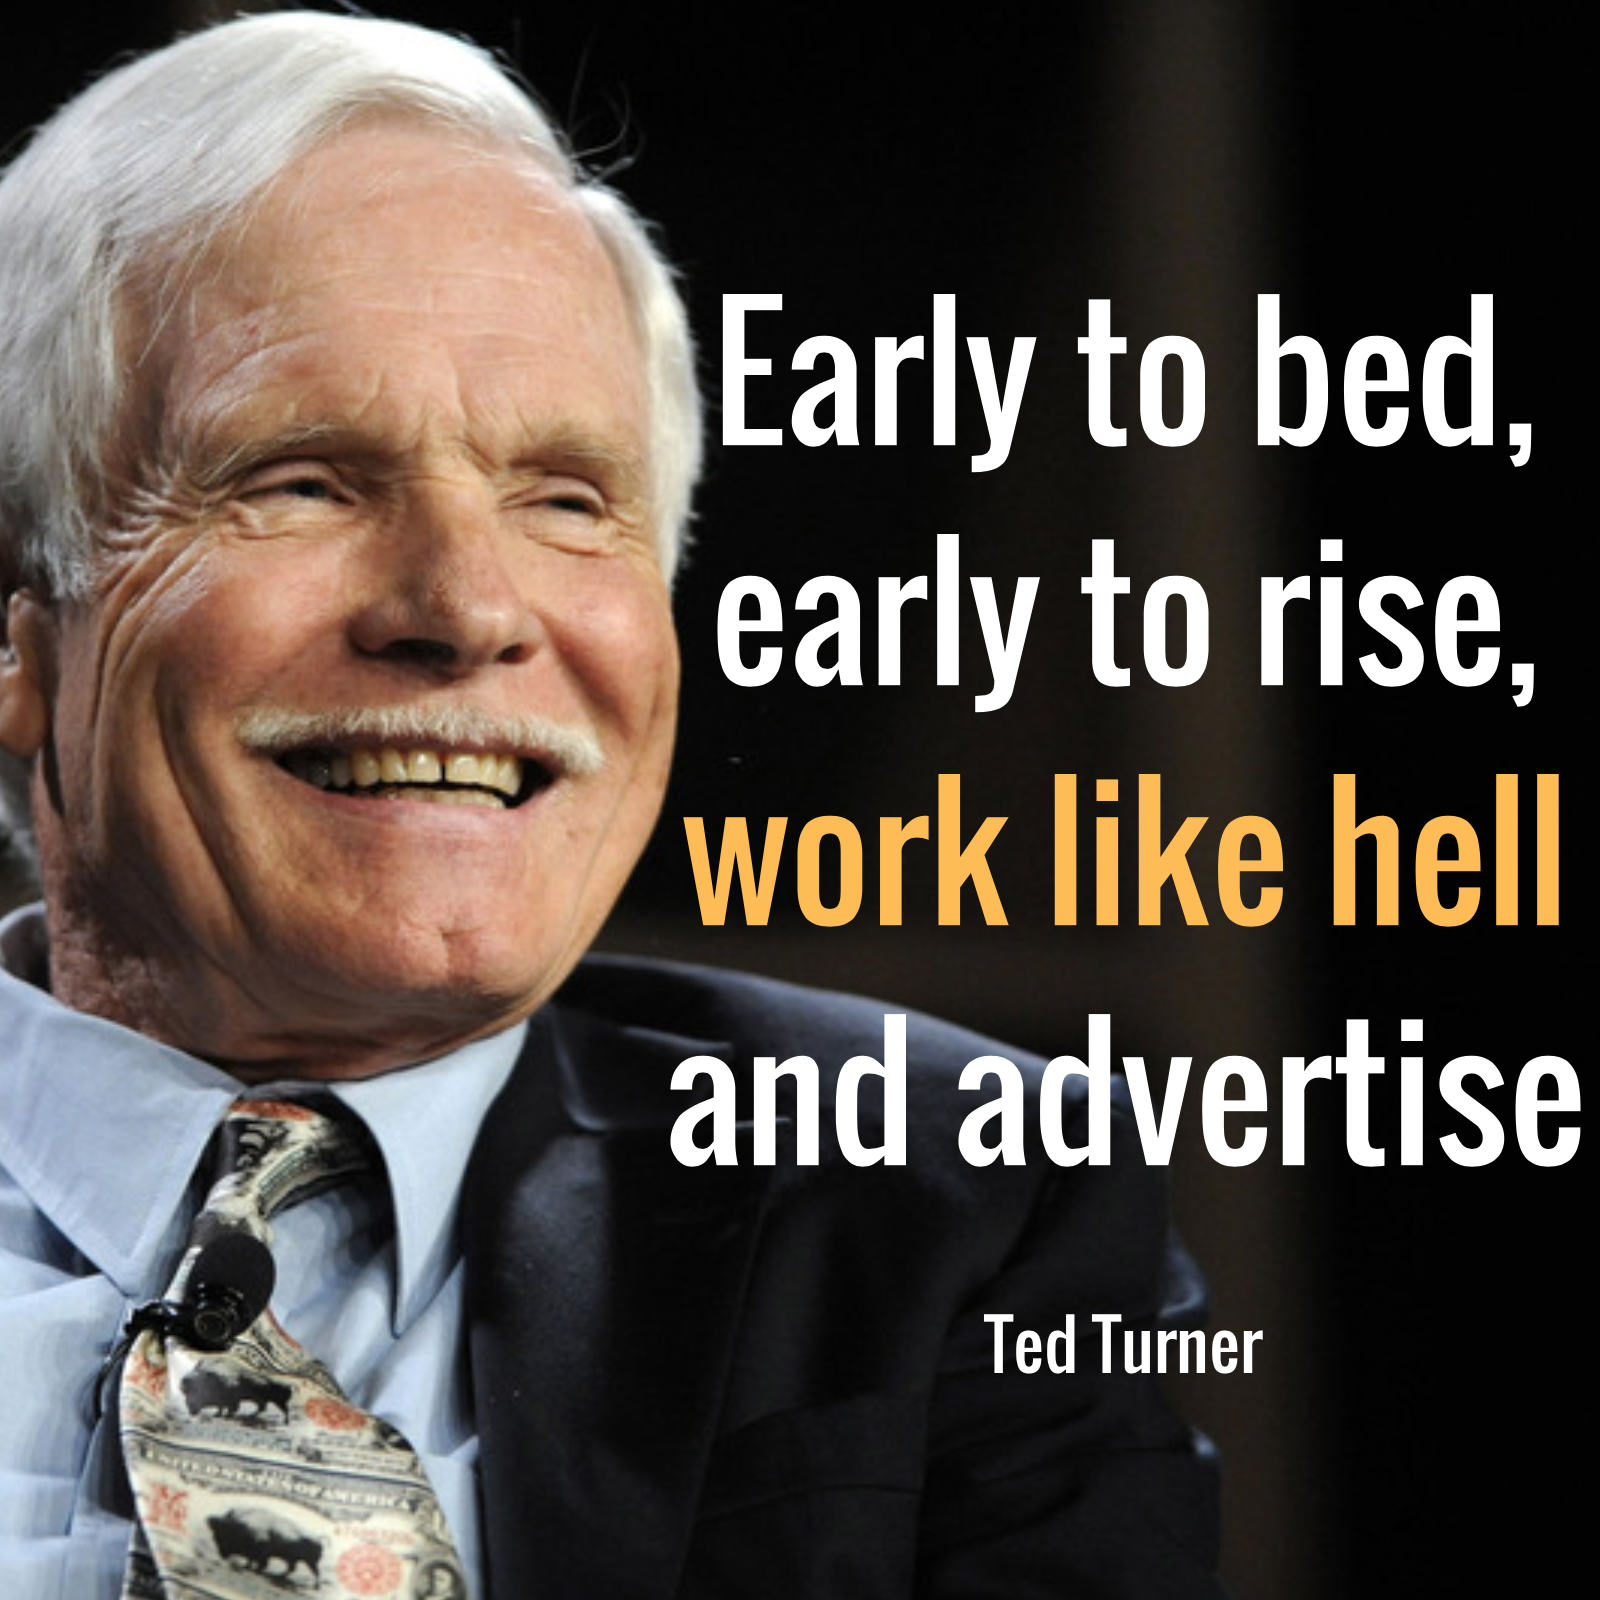 """Il motto usato da Gert Boyle per motivarsi: """"Early to bed, early rise, work like hell and advertise"""""""